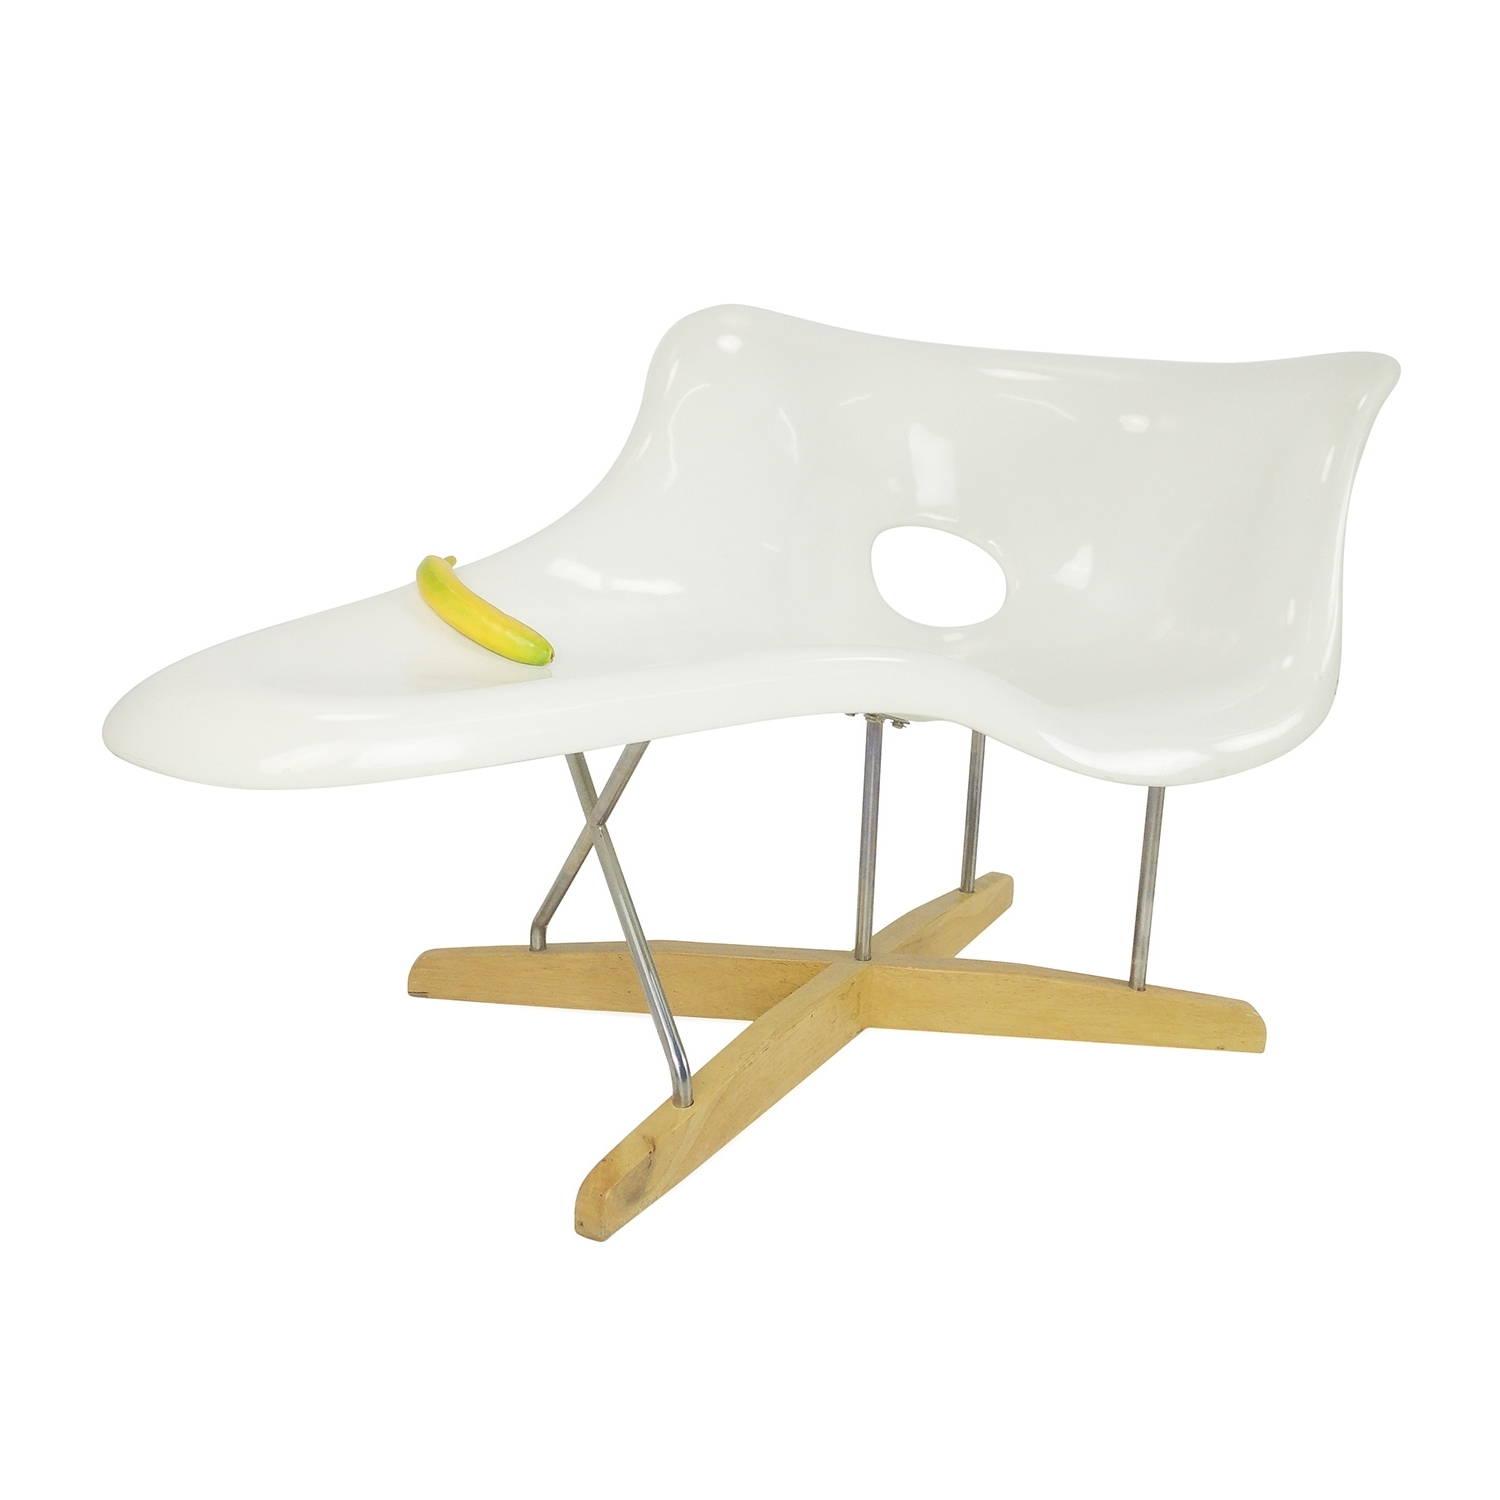 [%63% Off – Eames Replica Of La Chaise La Chaise Replica Lounge Pertaining To Well Liked Eames Chaises|Eames Chaises With Famous 63% Off – Eames Replica Of La Chaise La Chaise Replica Lounge|Favorite Eames Chaises Pertaining To 63% Off – Eames Replica Of La Chaise La Chaise Replica Lounge|Preferred 63% Off – Eames Replica Of La Chaise La Chaise Replica Lounge For Eames Chaises%] (View 8 of 15)